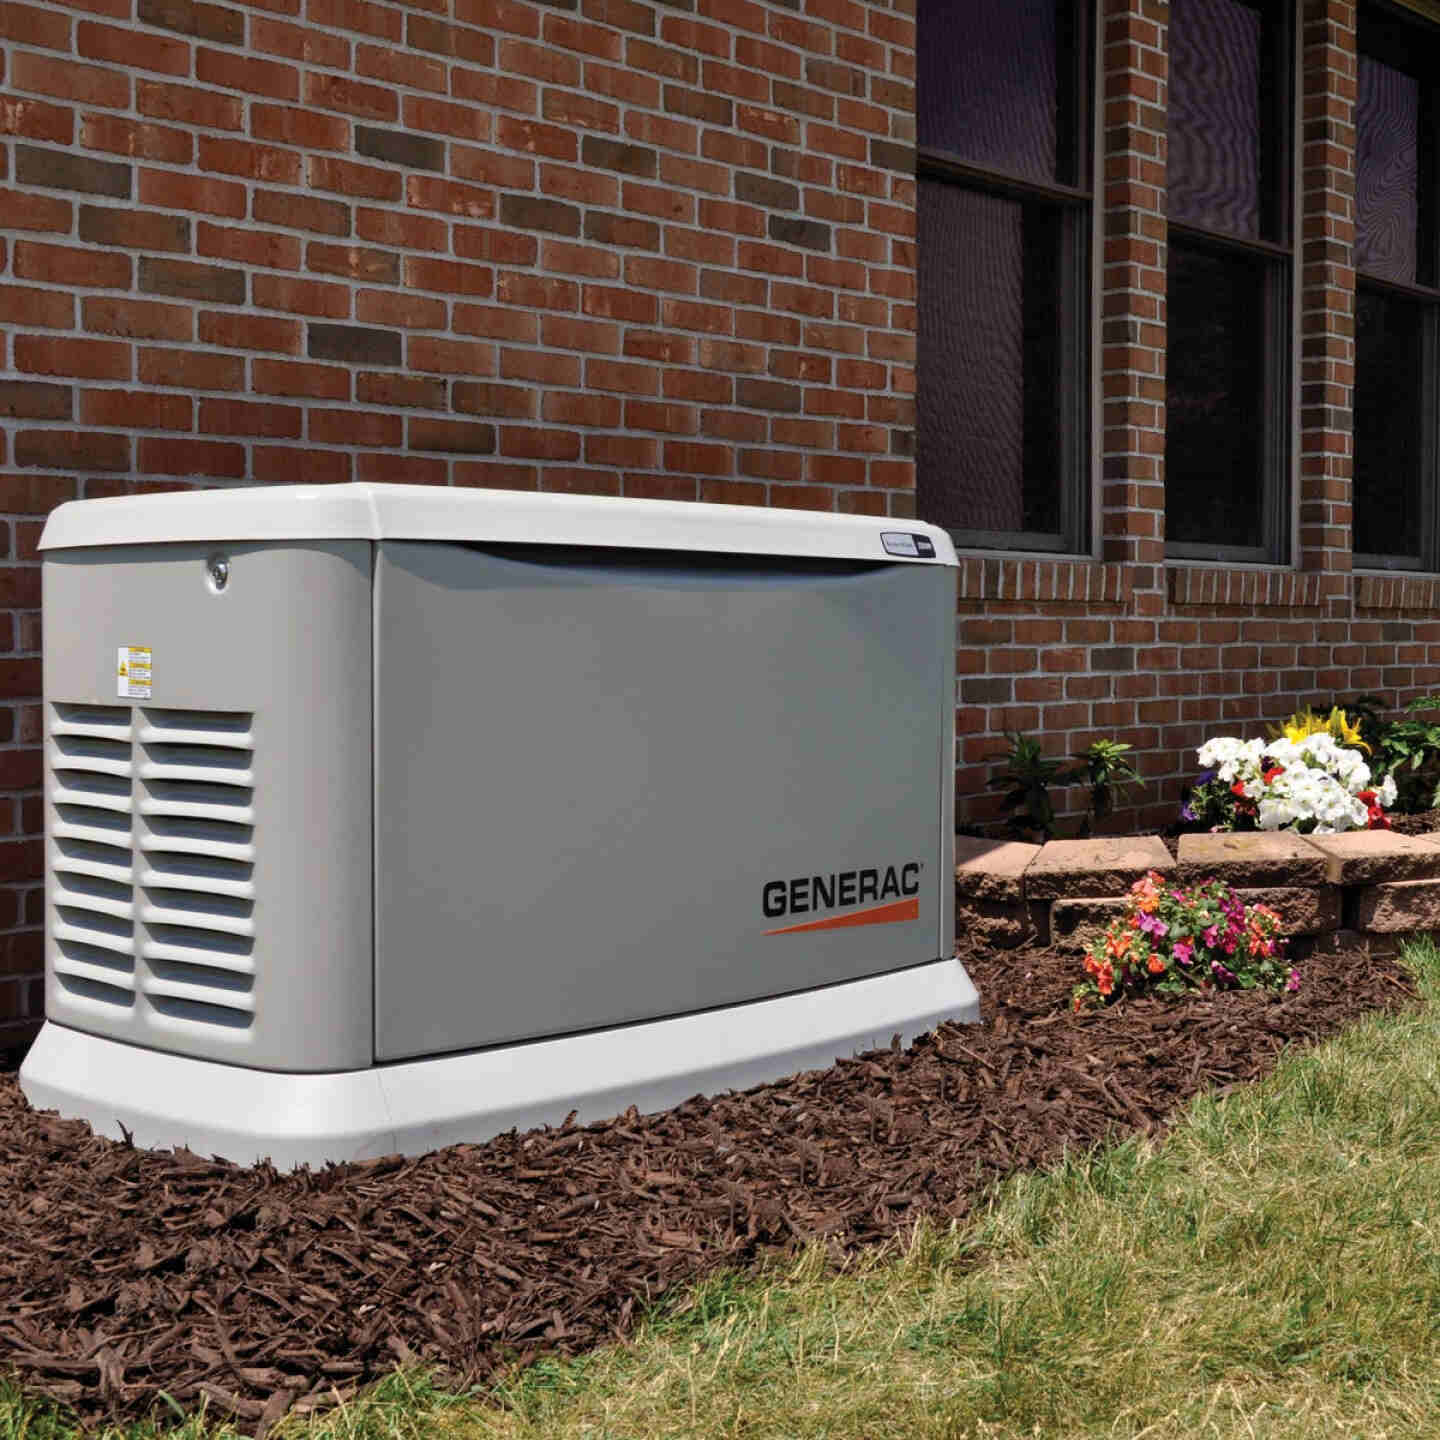 Generac Guardian WiFi 19,500W Natural Gas/22,000W LP Home Standby Generator with 200A Automatic Transfer Switch Image 2